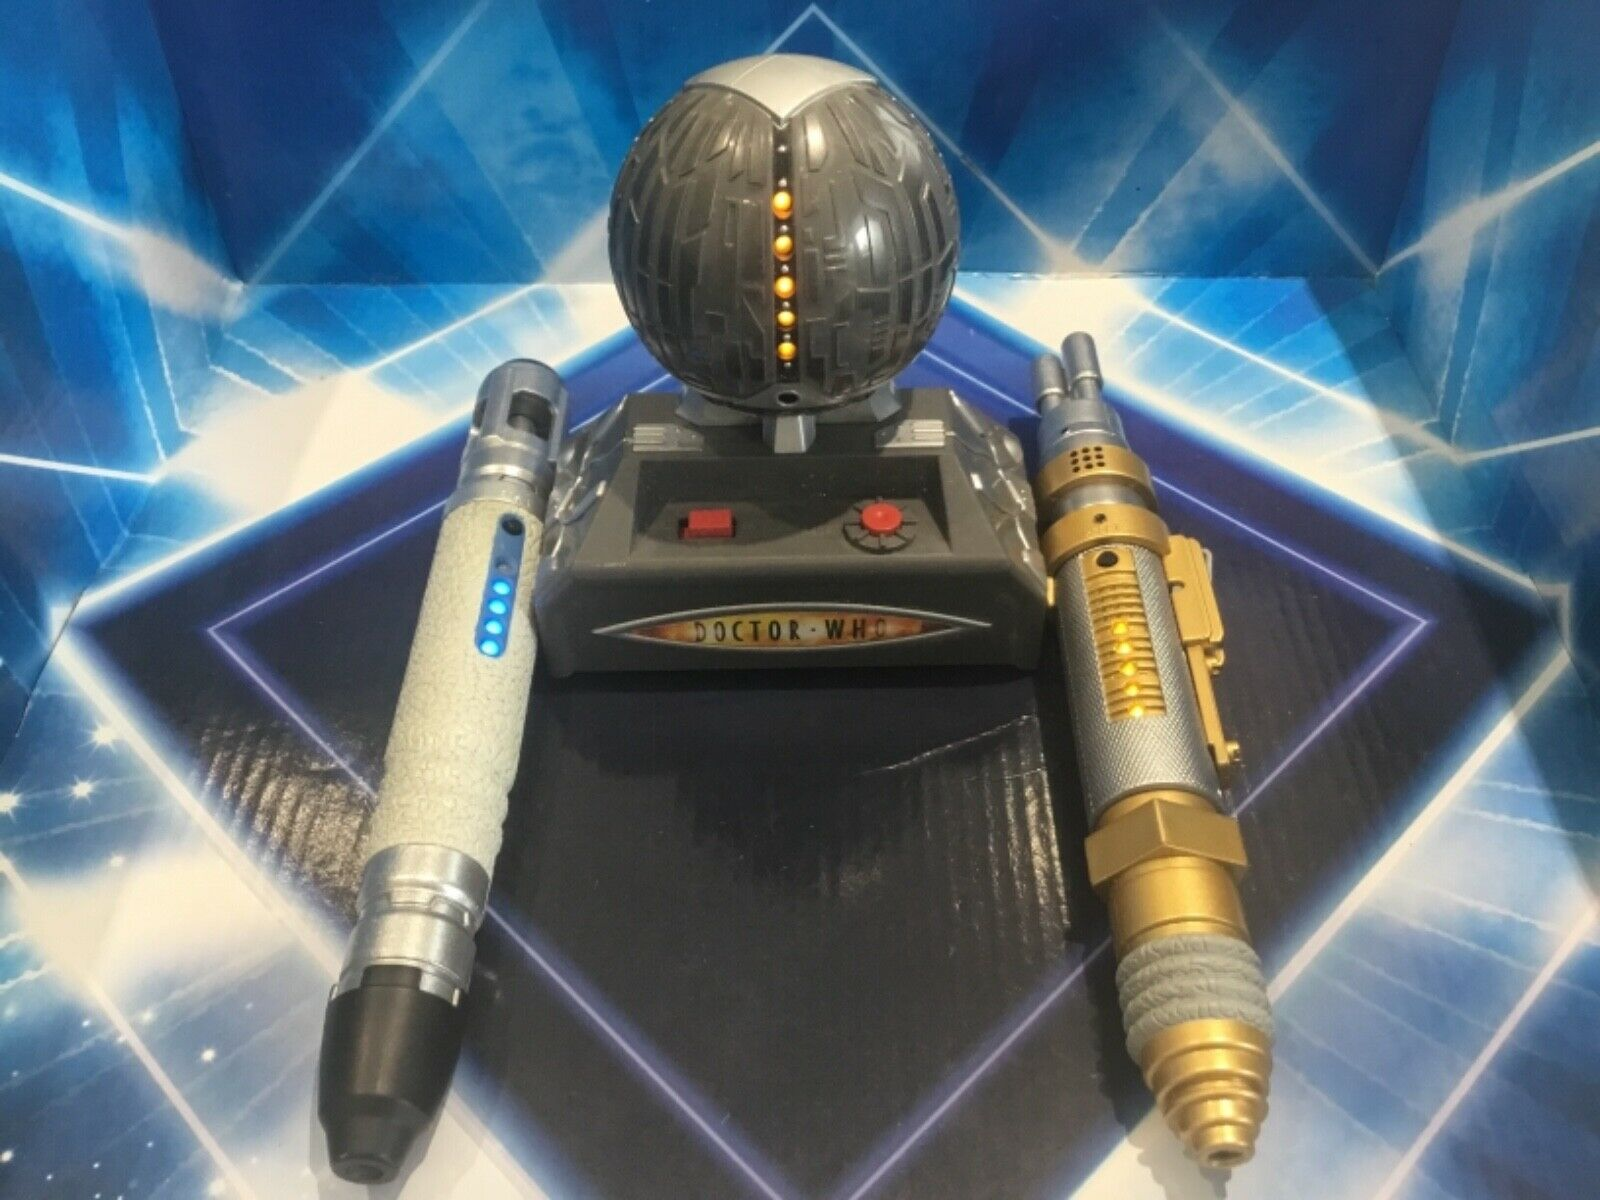 DOCTOR WHO ELECTRONIC GAME - SONIC LAZER SCREWDRIVER BATTLE - SOUND & LIGHT FX